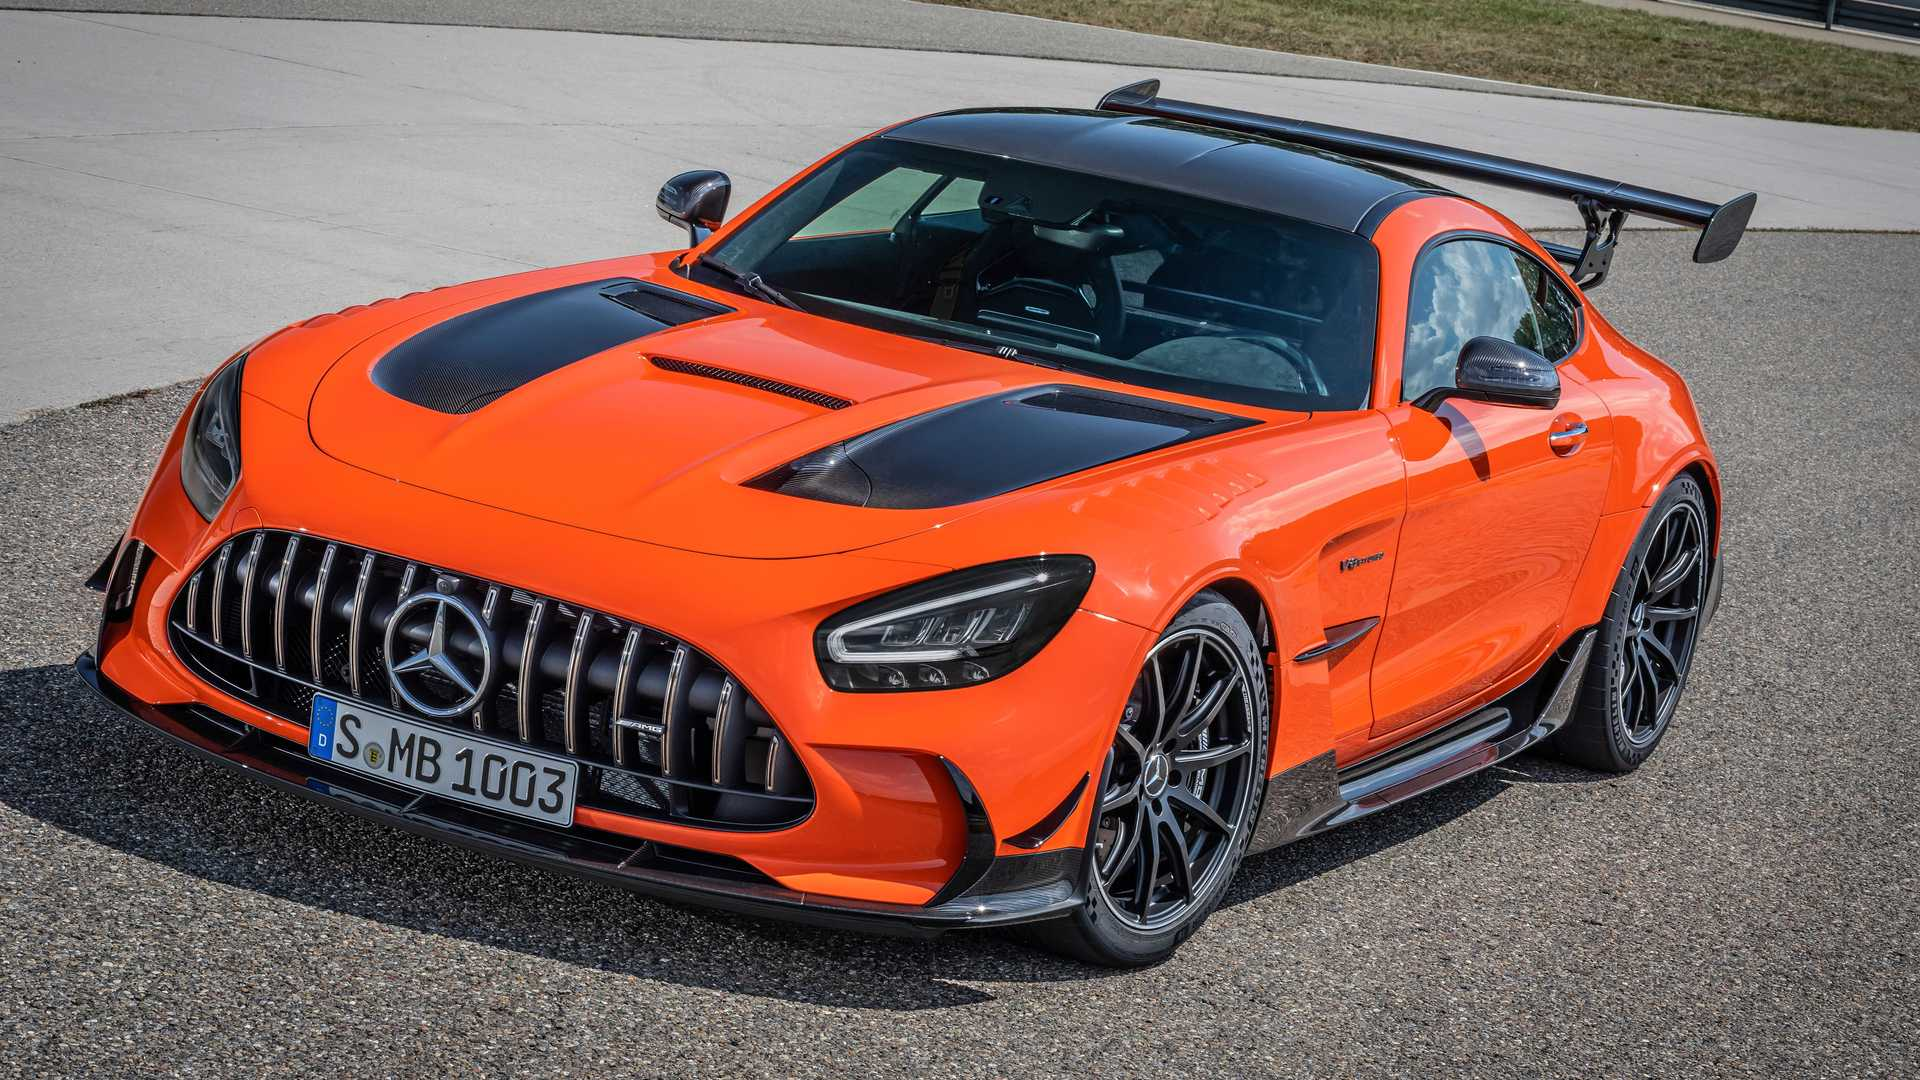 2014 - [Mercedes-AMG] GT [C190] - Page 33 2021-mercedes-amg-gt-black-series-with-amg-magma-beam-color